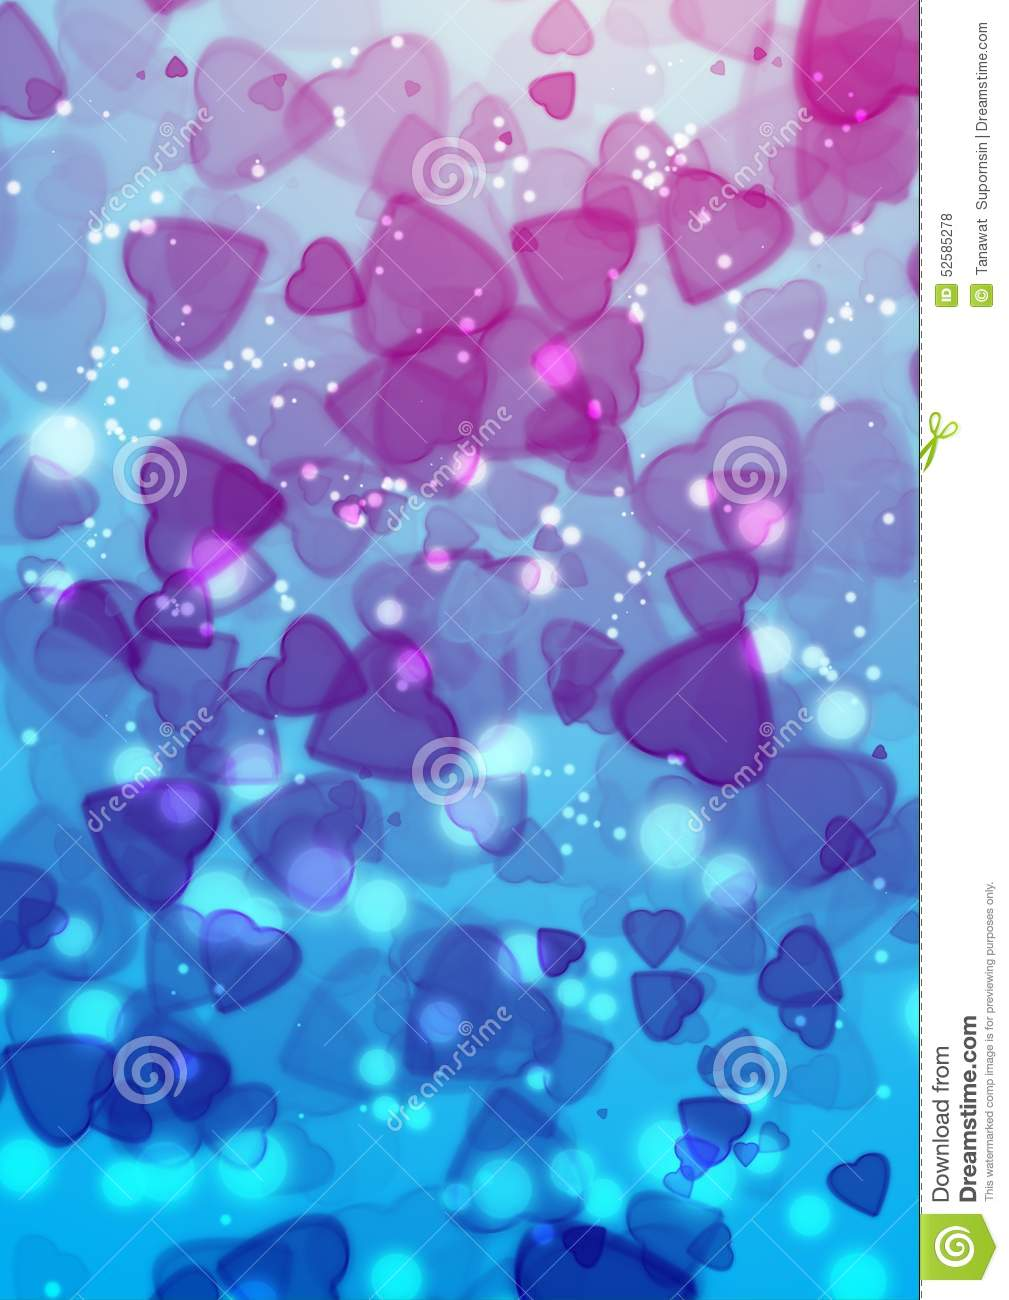 abstract heart blue purple color bokeh wallpaper stock photo - image